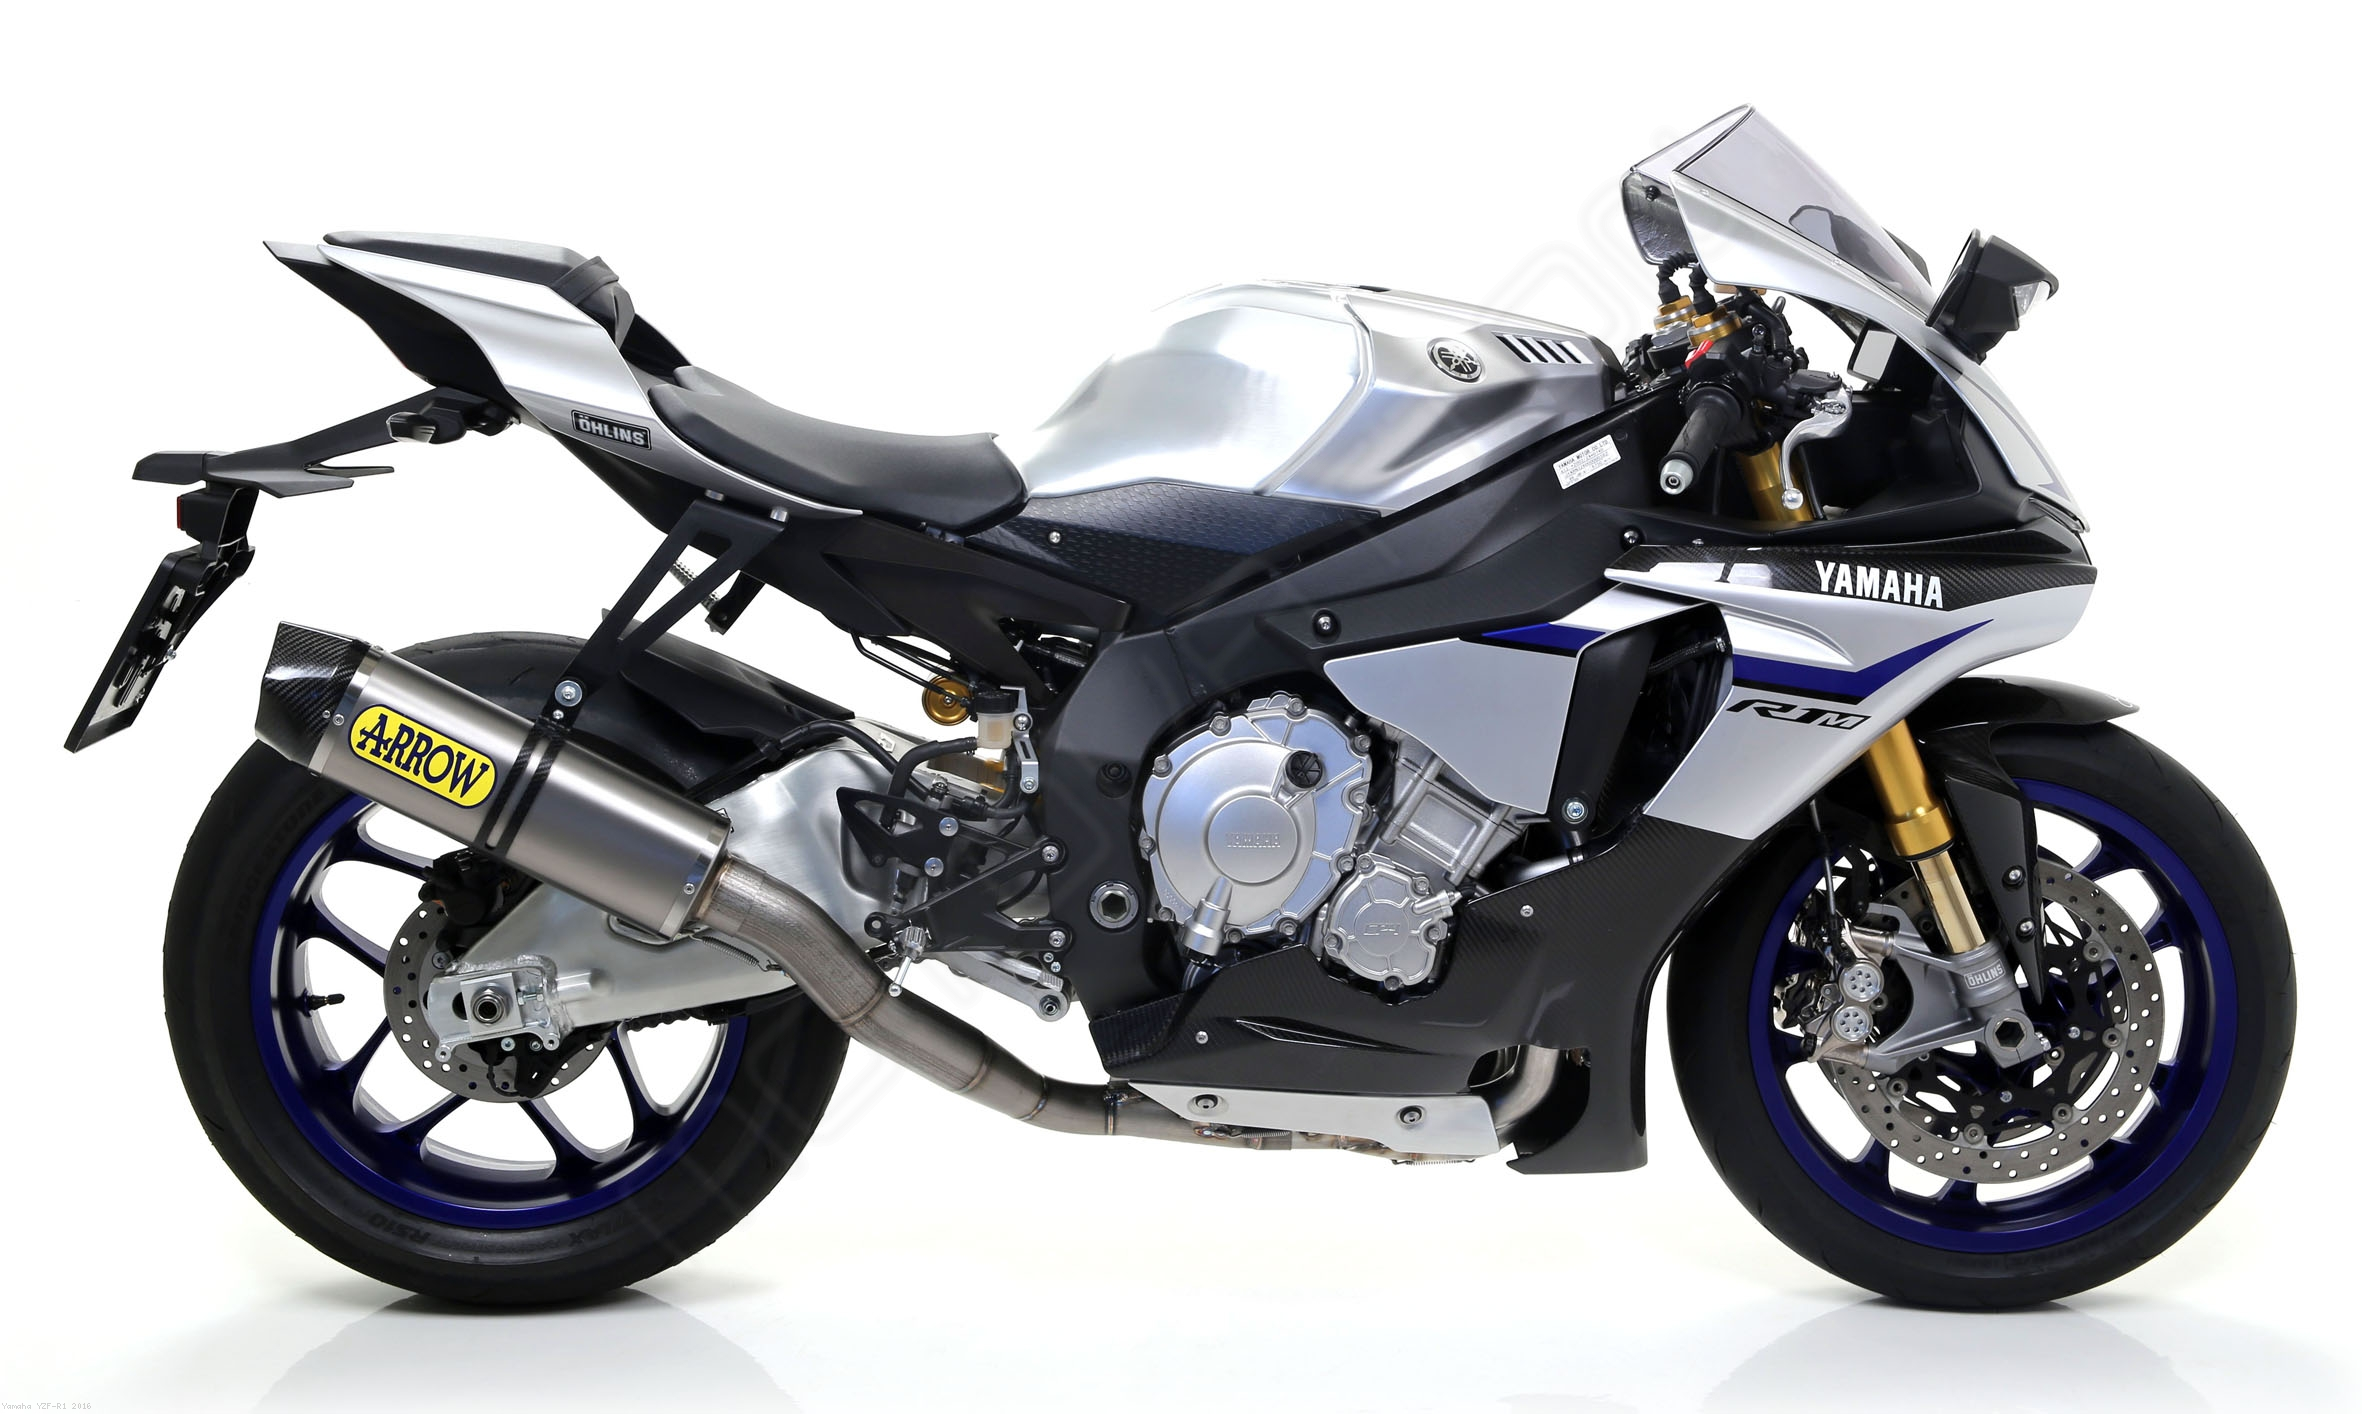 Competition Full Indy Race Exhaust System By Arrow Yamaha YZF R1